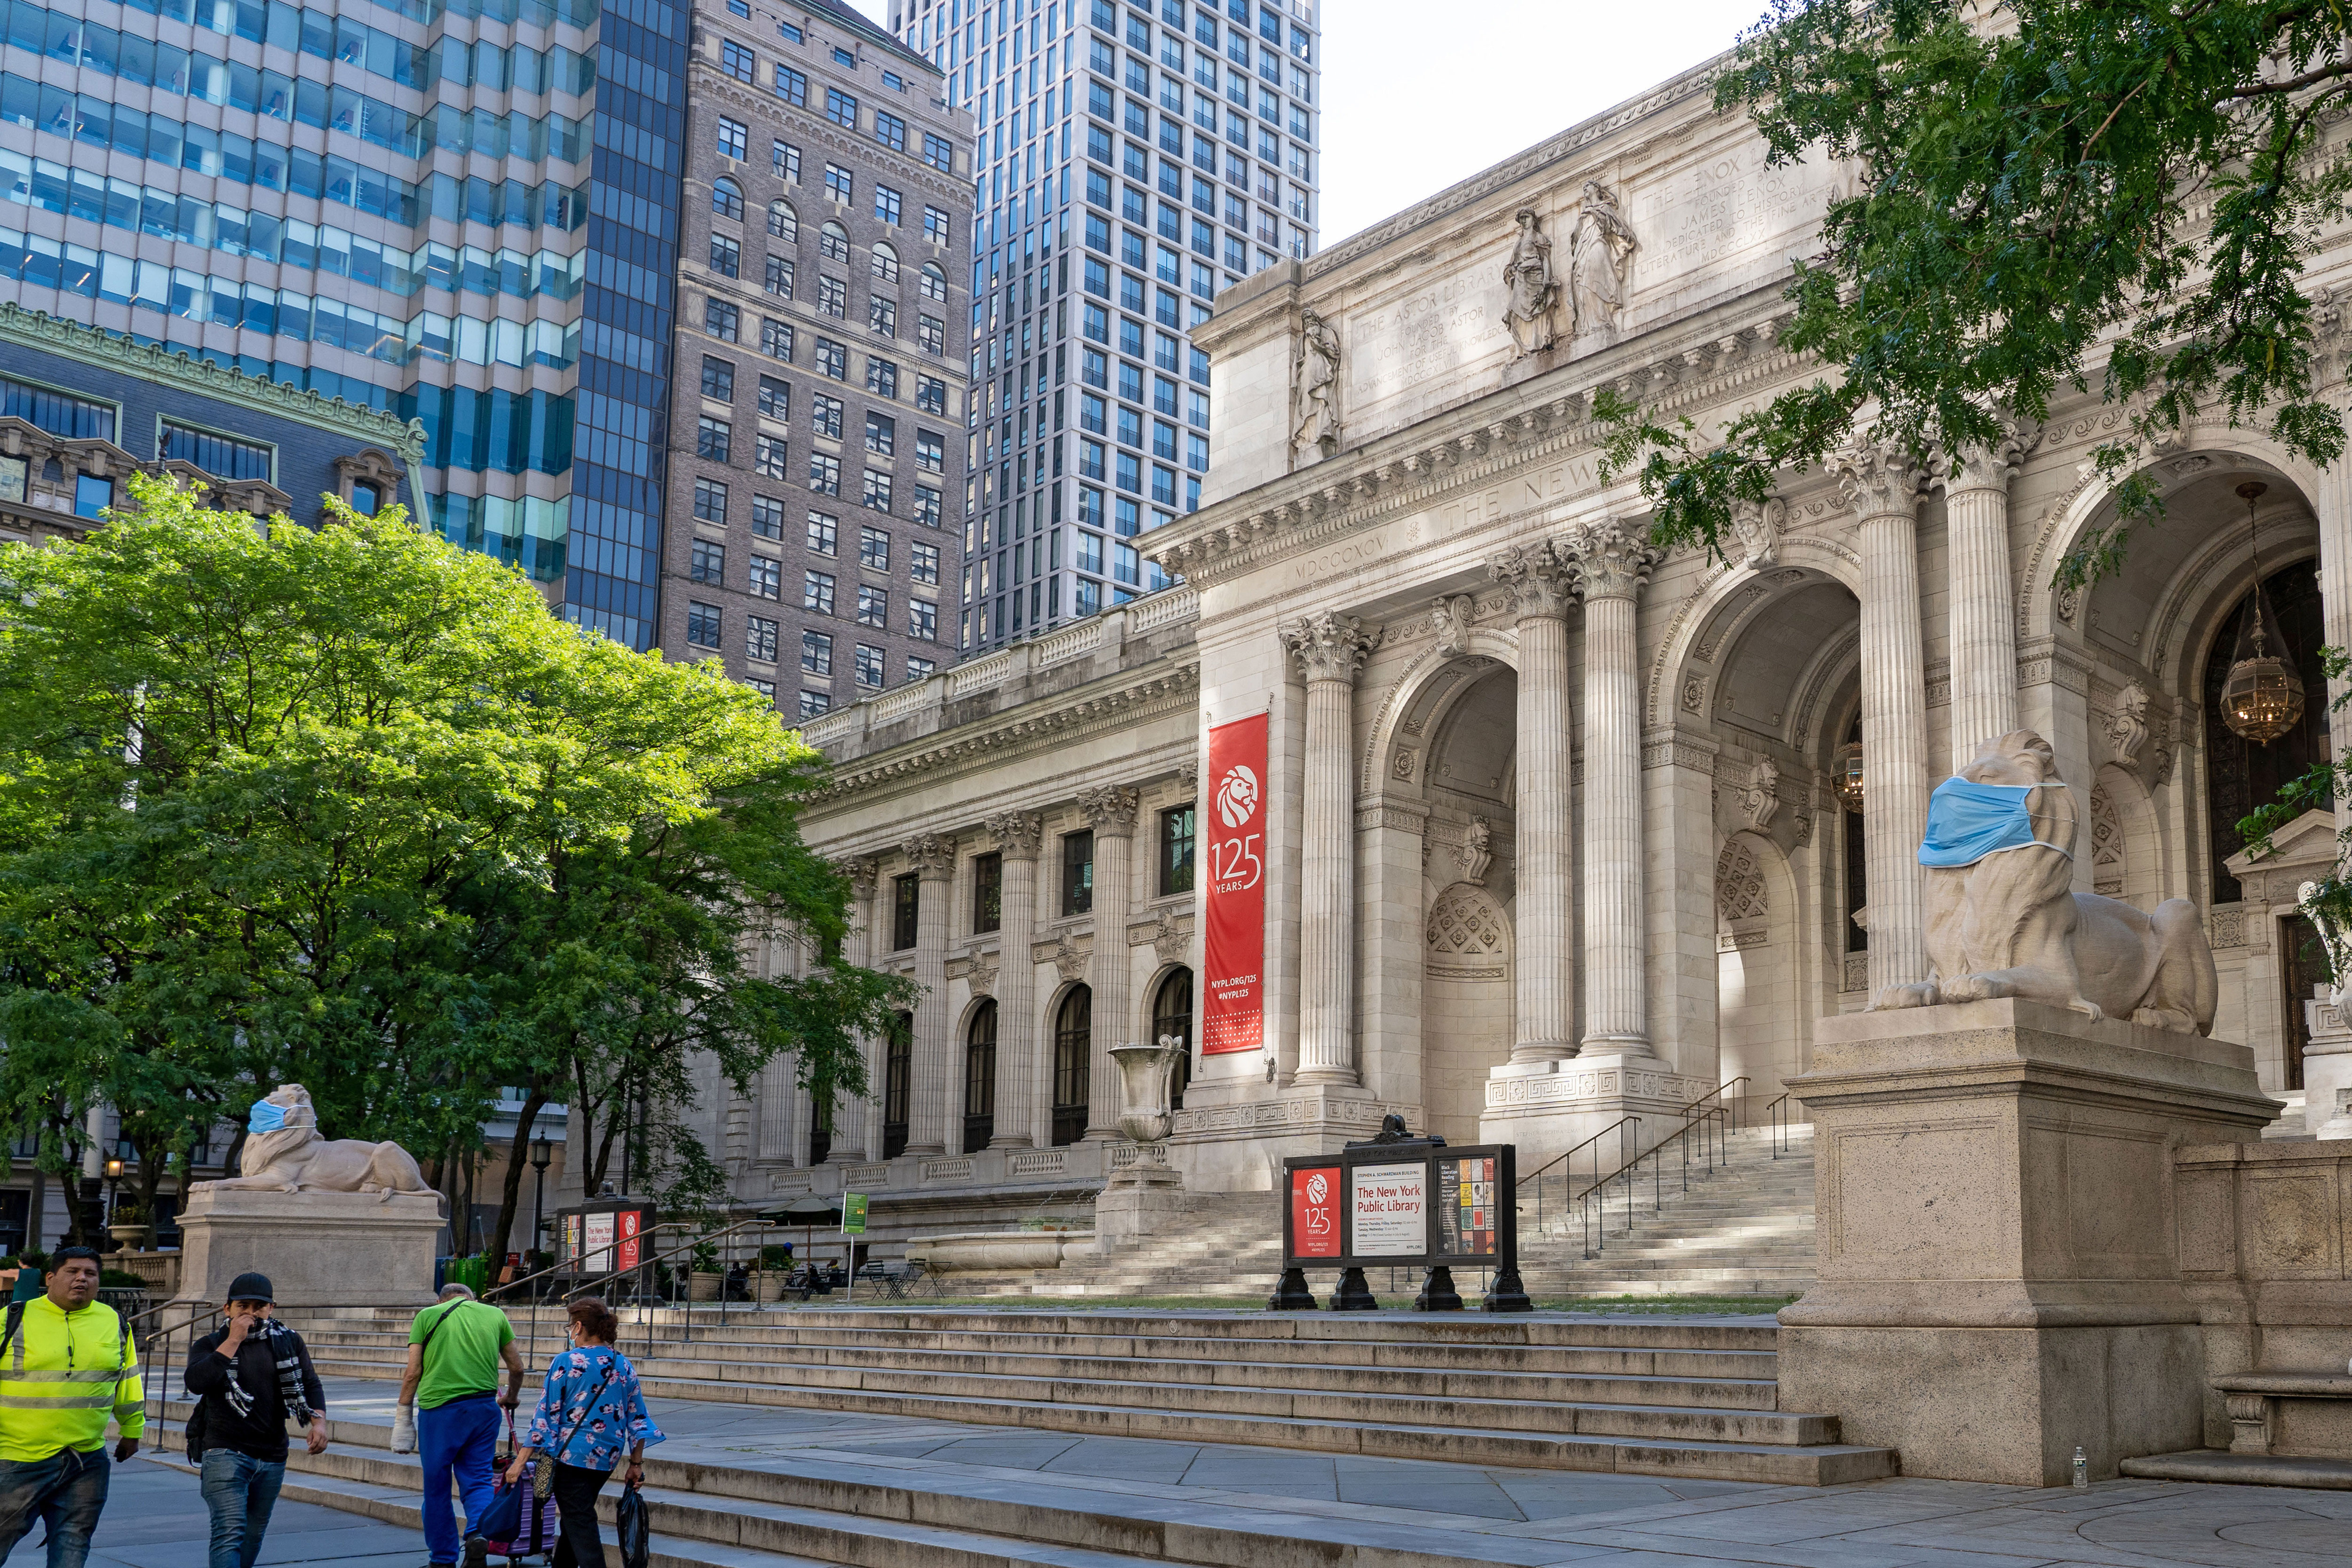 People walk by the New York Public Library in July 2020.